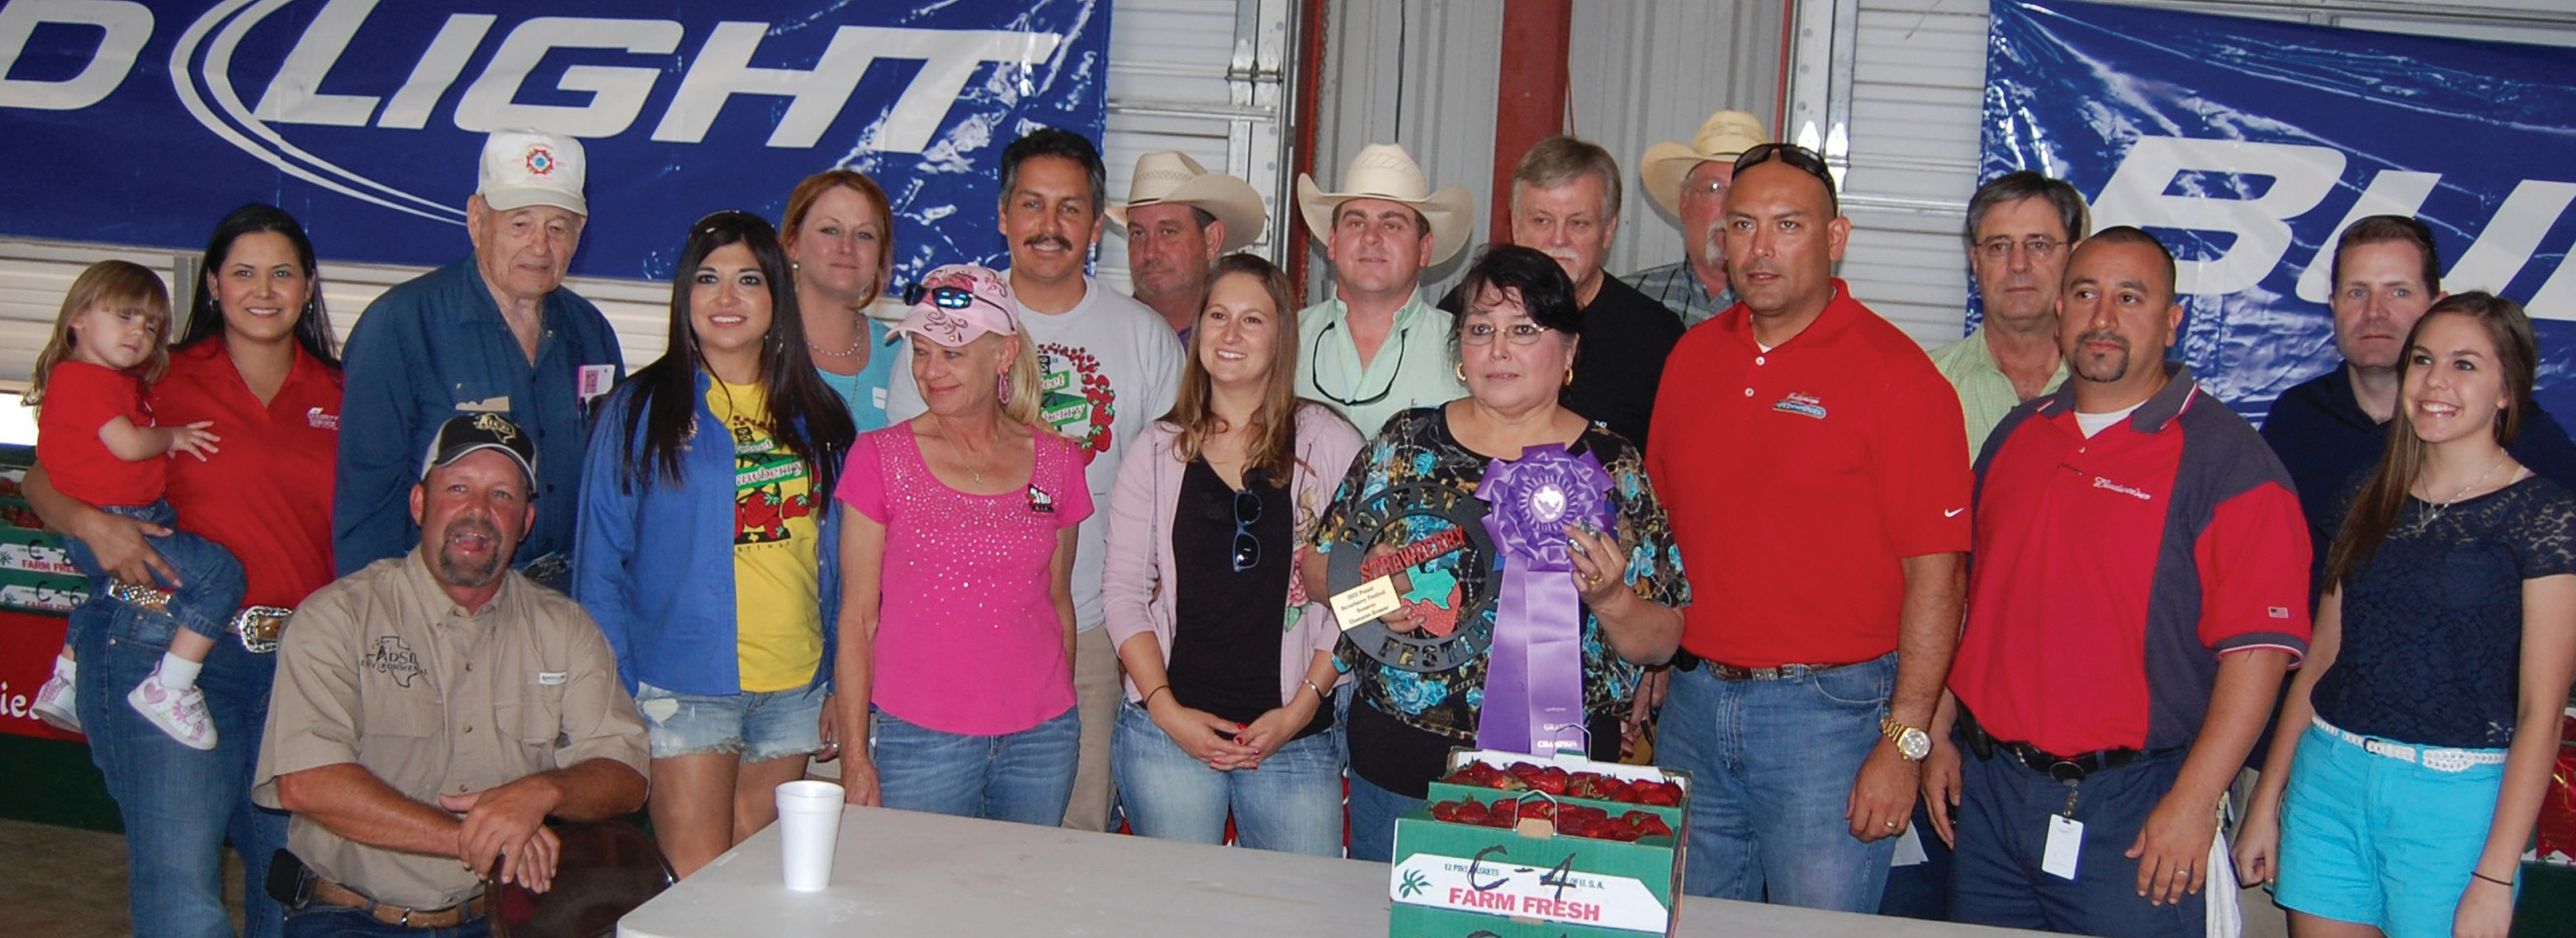 Stella Reyes was the Grand Champion winner at this year's Poteet Strawberry Festival Auction. Her prize-winning berries sold for $13,100. She is joined by bidders, left to right: Ginnie Otto holding Mariana (Security Service Federal Credit Union), Jerome Korus (Poteet VFW), Jimmy Howe (DSD Environmental), Jackie Brown (Security State Bank), Ginger Walker (Poteet Country Winery), Dawn Mason (South Texas Que & Brew), Louis Ramos (Poteet Rotary Club and Ramos Tire & Automotive Service, Mark Biediger (Pure Party Ice), Natalie Wolff and Casey Bartek (Bartek Construction), winning grower Stella Reyes, Bob Hurley (Hurley Auto Parts, Plestex Theatre and Hurley Funeral Home), Robert Mason (South Texas Que & Brew), Ben Garcia (Bud Light-Silver Eagle Distributors), Eldon Tuttle (Tuttle Motor Co.), Jason Olvera (Bud Light-Silver Eagle Distributors), Cory Oliver (H-E-B) and Katie Harkrider (H-E-B).